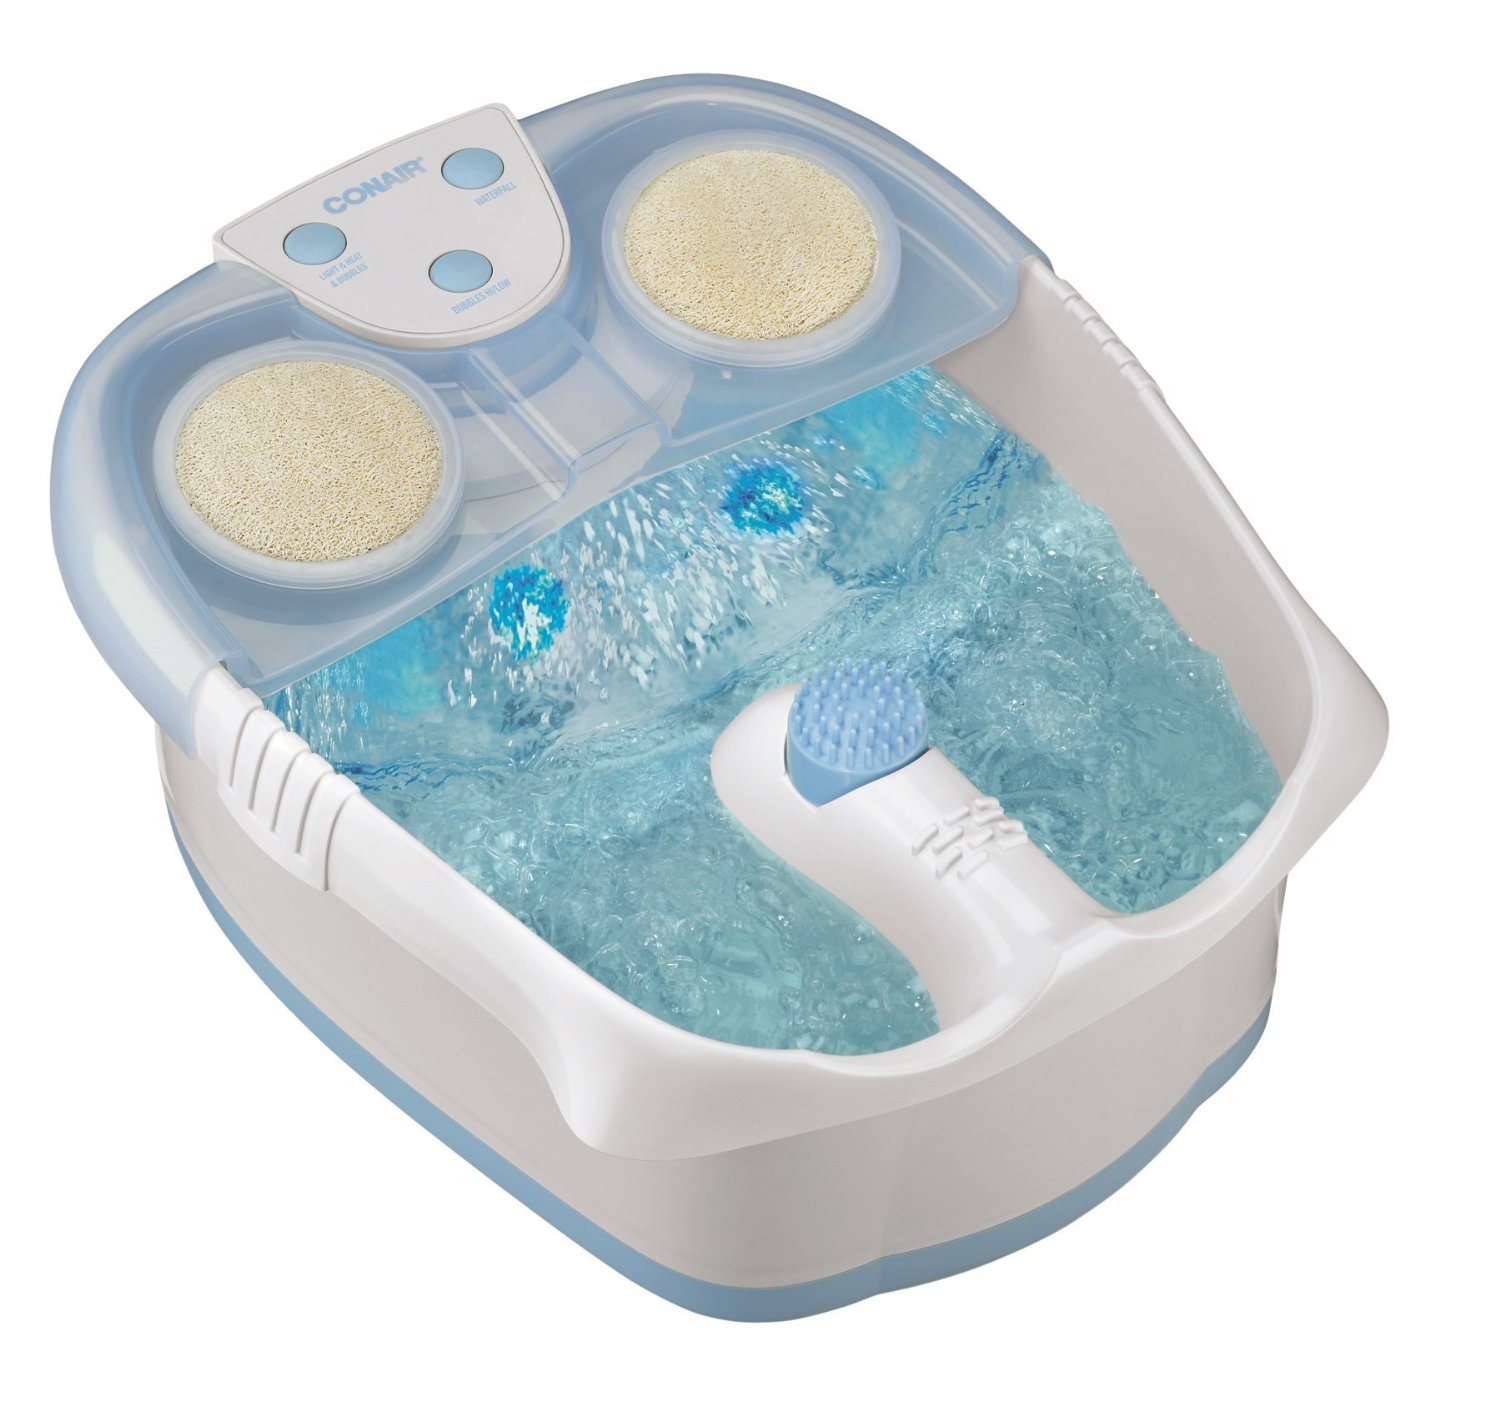 Conair Waterfall Best Foot Spa with Lights, Bubbles and Heat